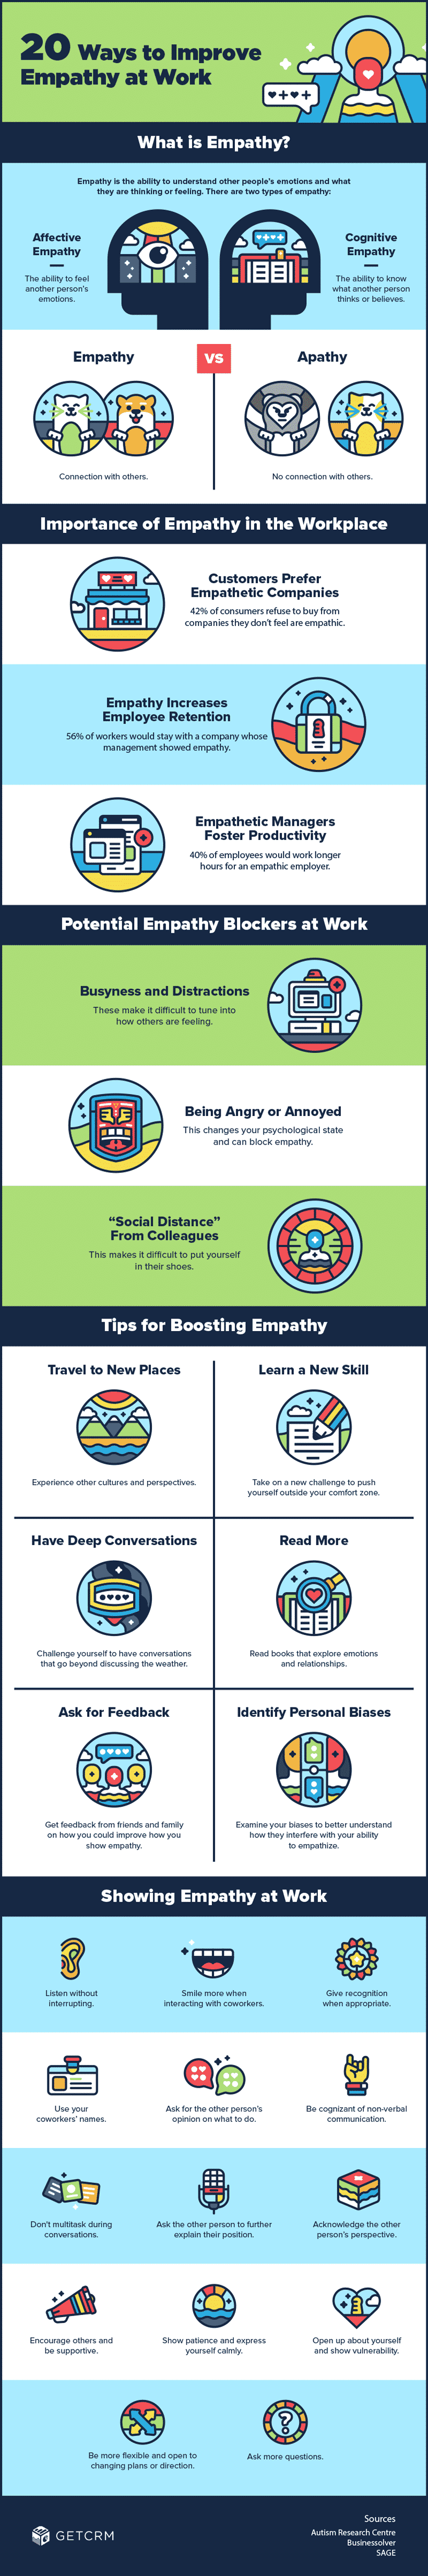 The Importance of Empathy in the Workplace: An Infographic From GetCRM. the importance of empathy in the workplace - Improve Empathy at Work IG FINAL 1 - The Importance of Empathy in the Workplace